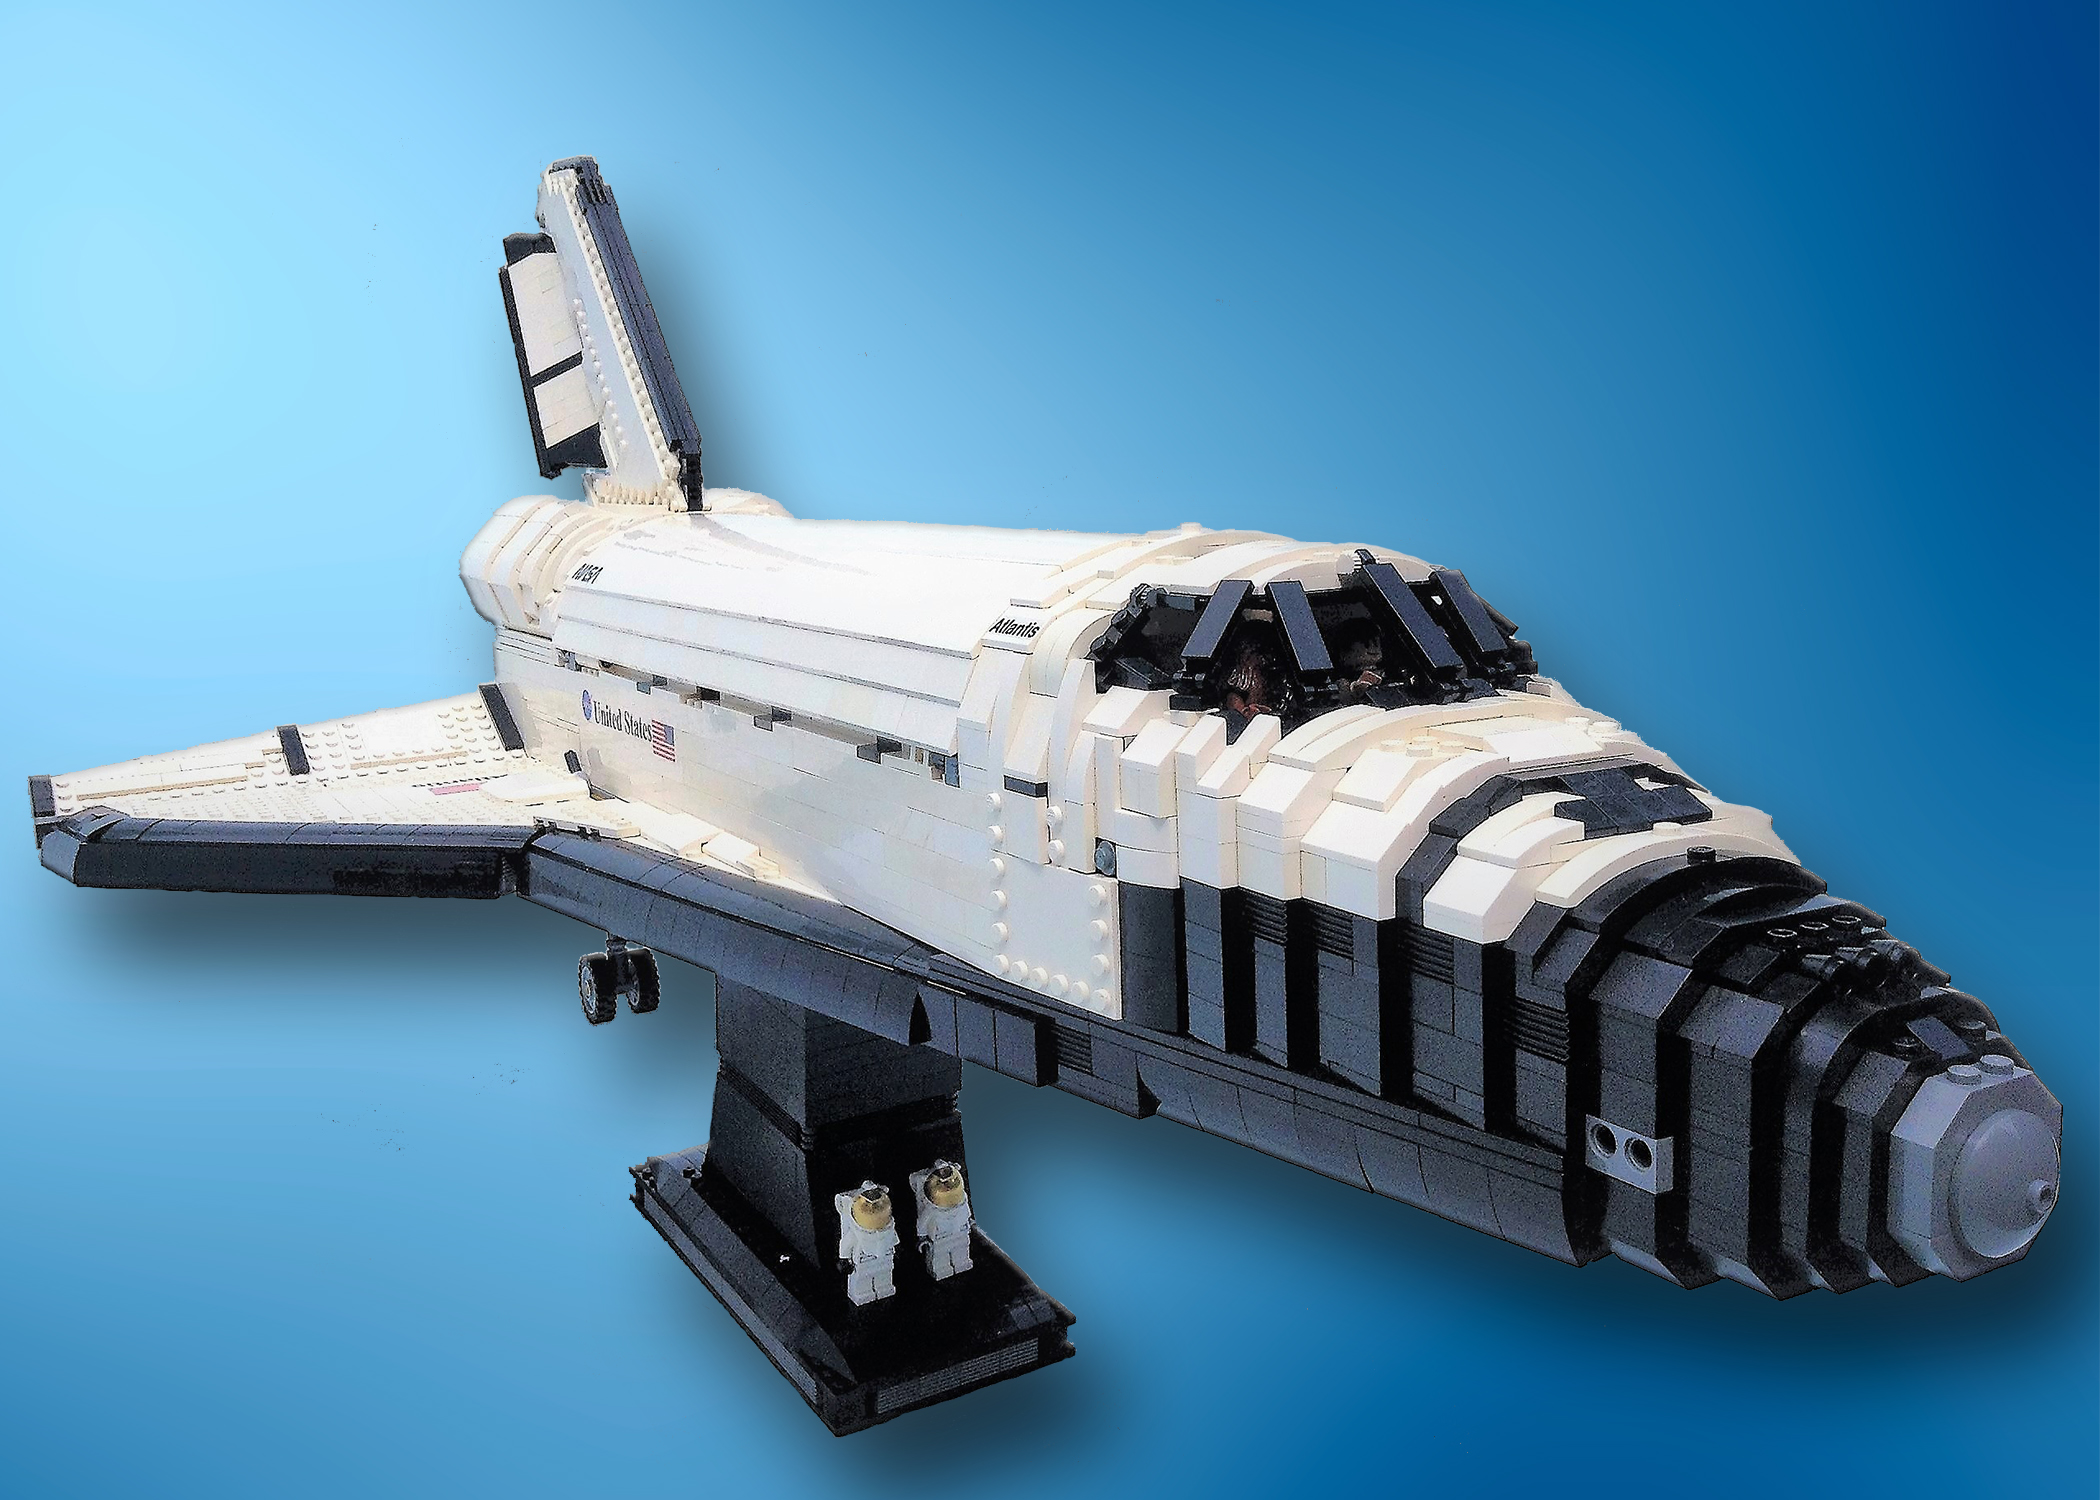 lego space shuttle and plane - photo #17